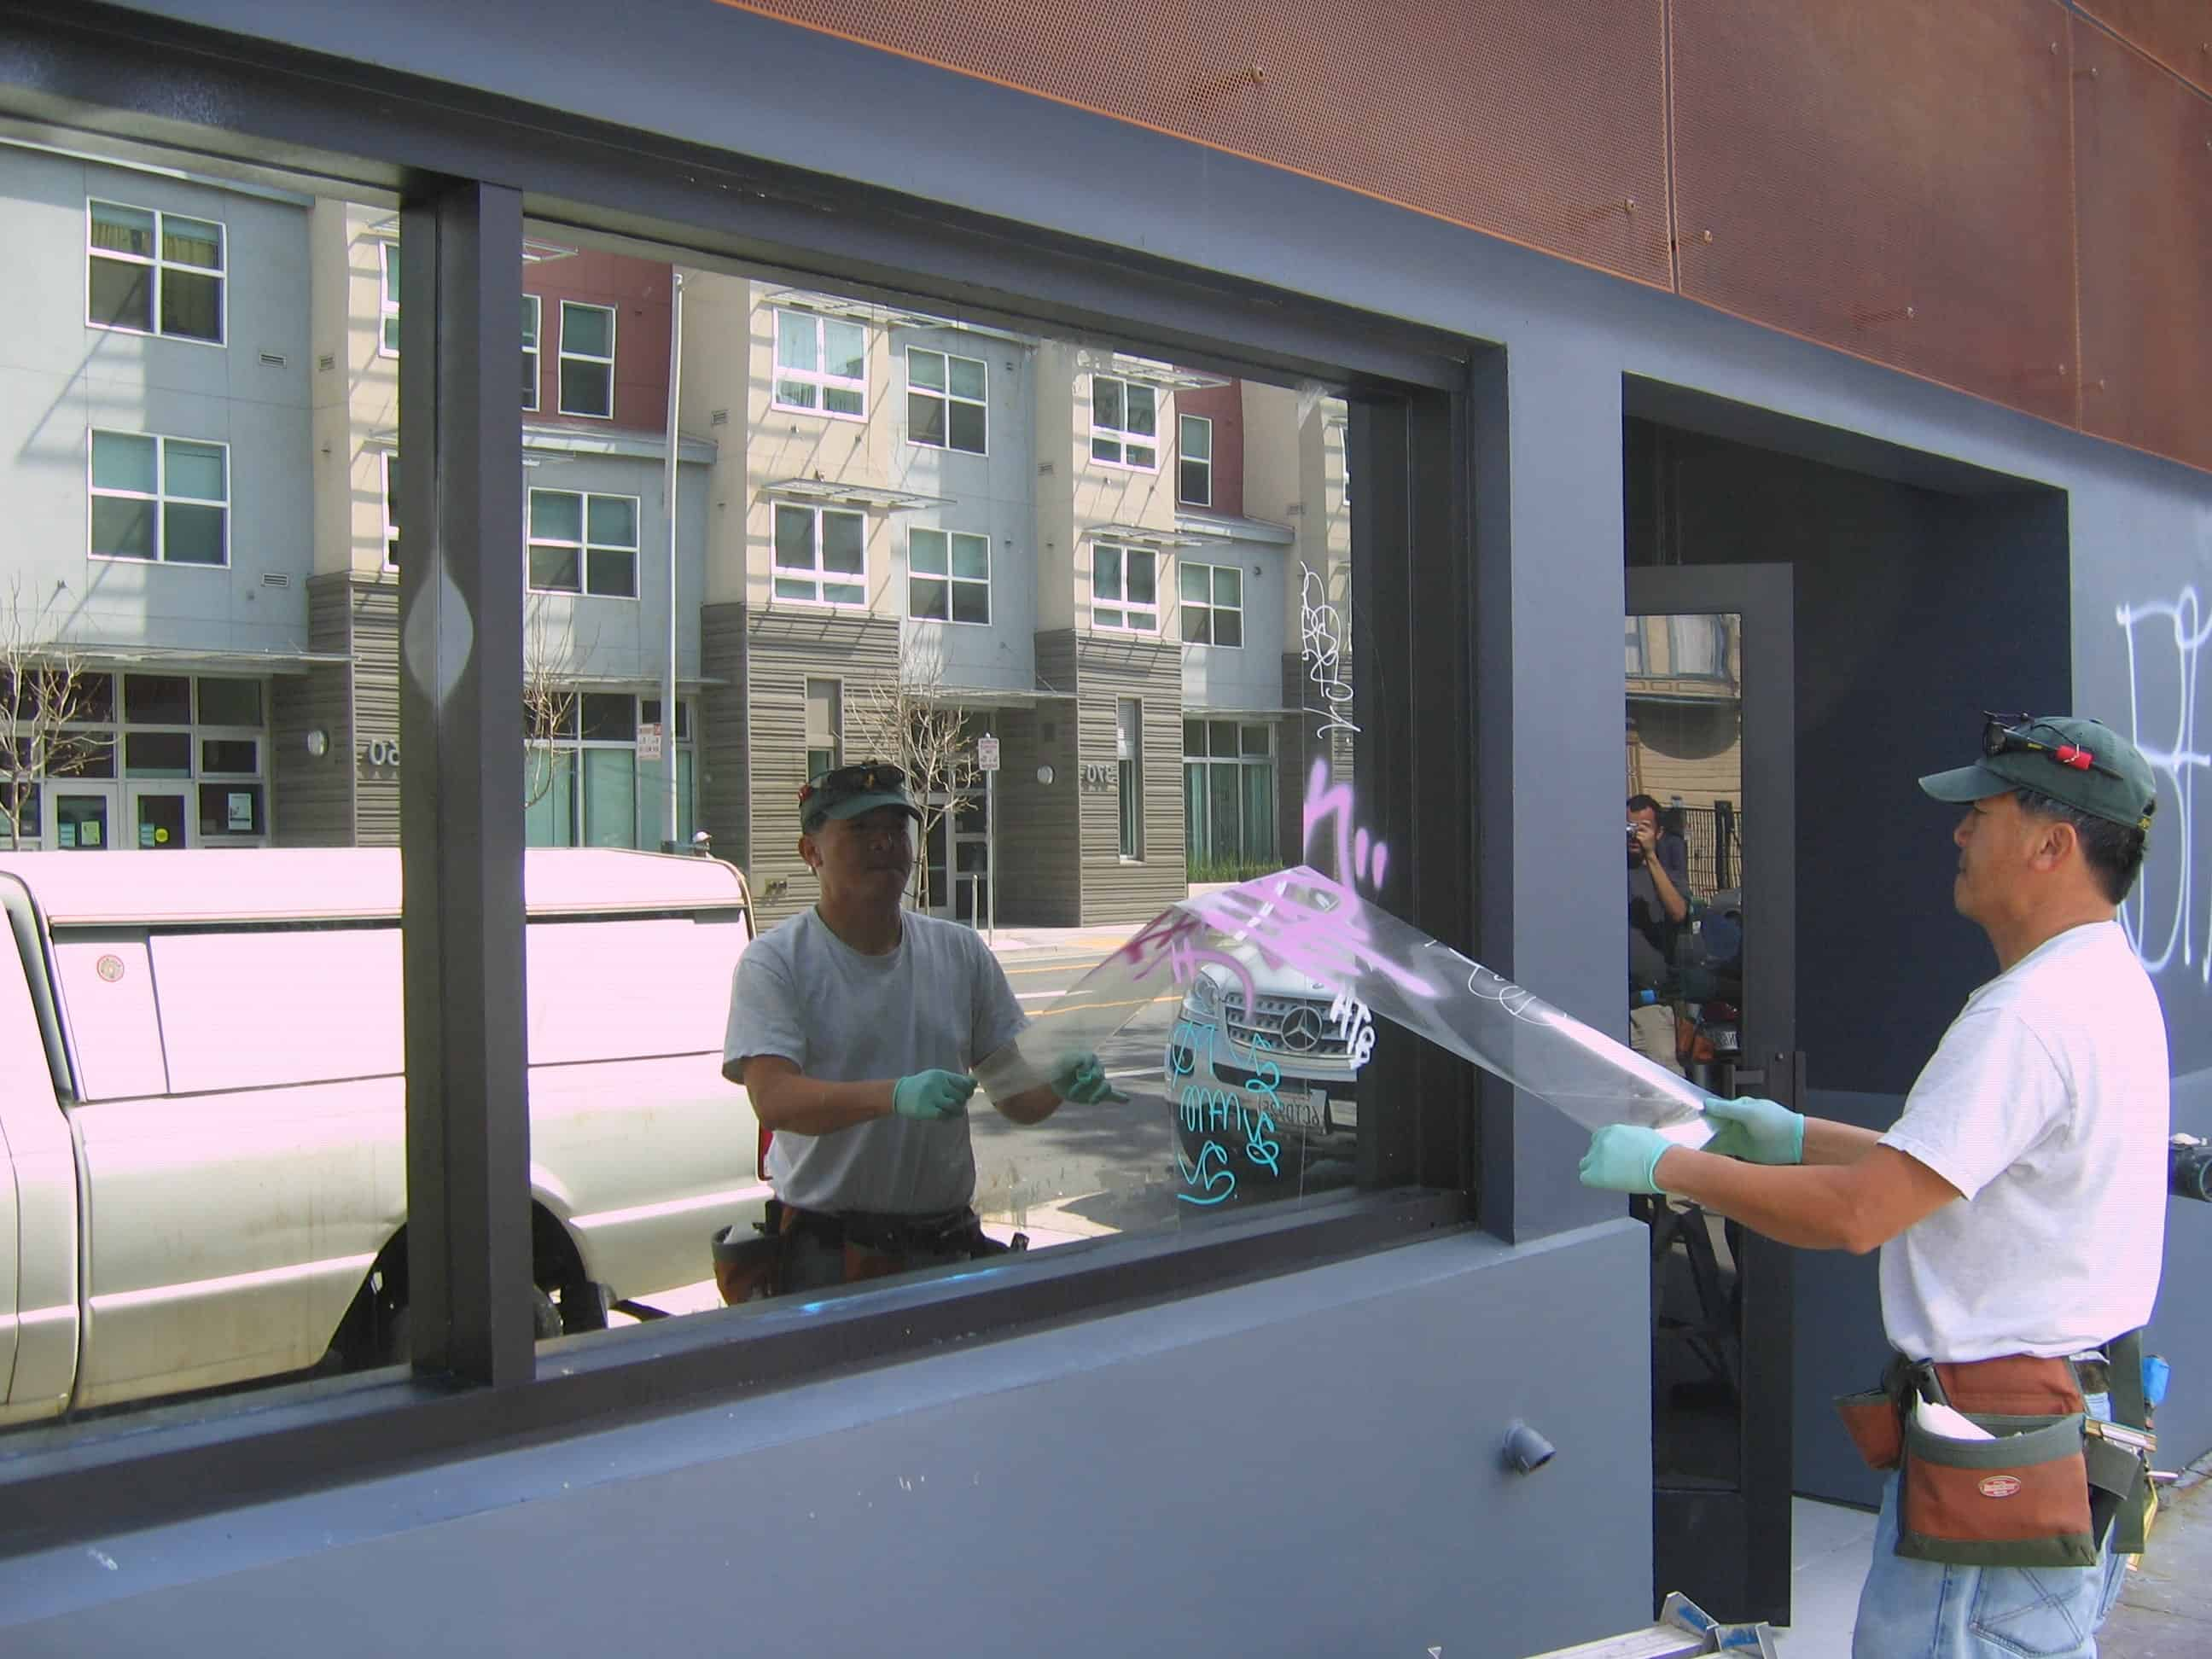 Anti Graffiti Window Film - image 009-min on https://skylightwindowfilms.com